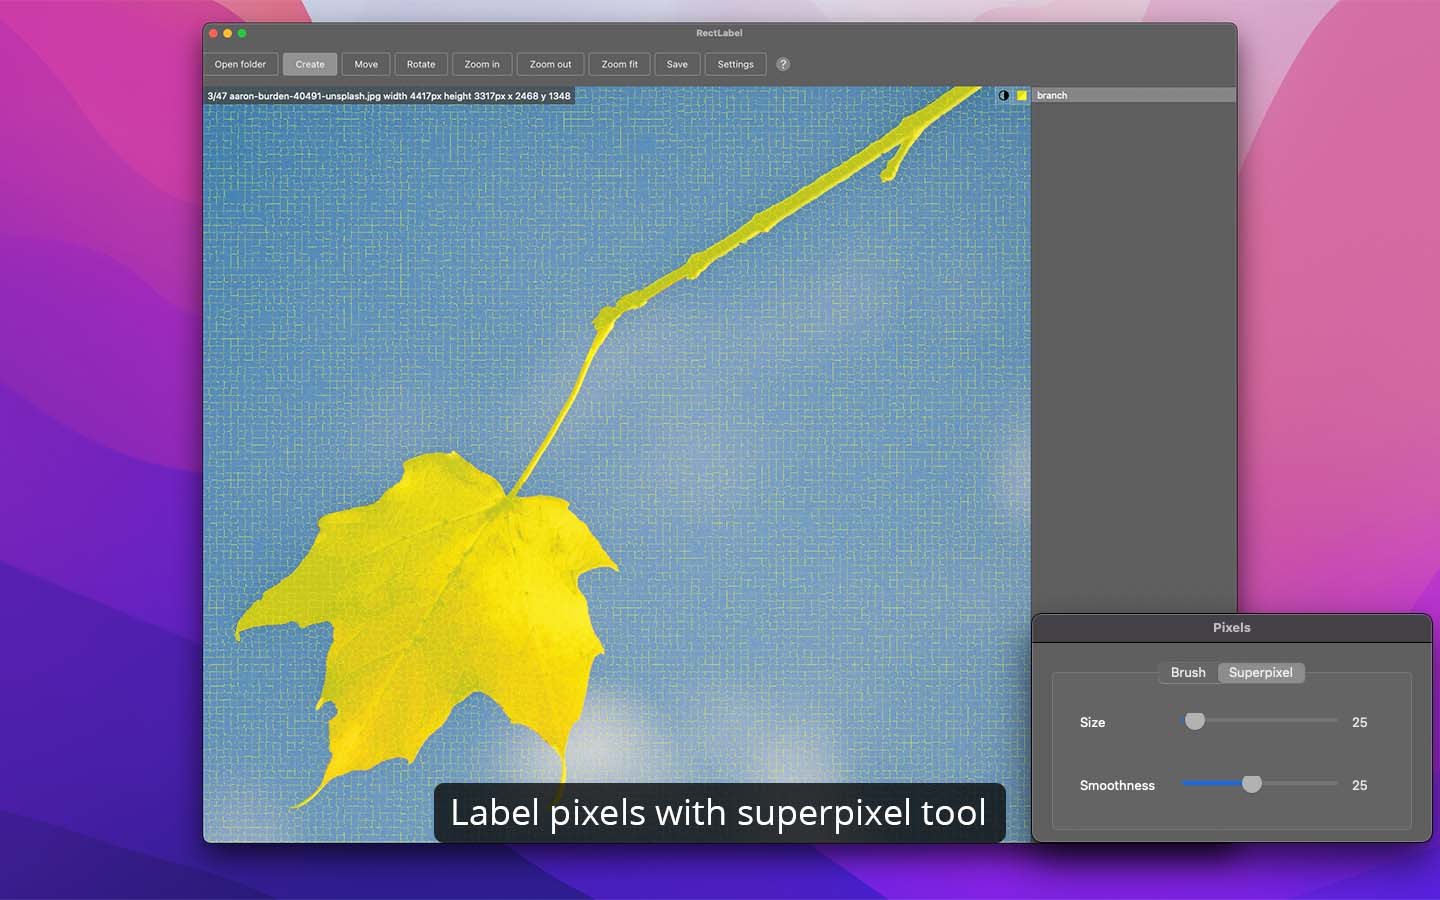 Label pixels with brush and superpixel tools